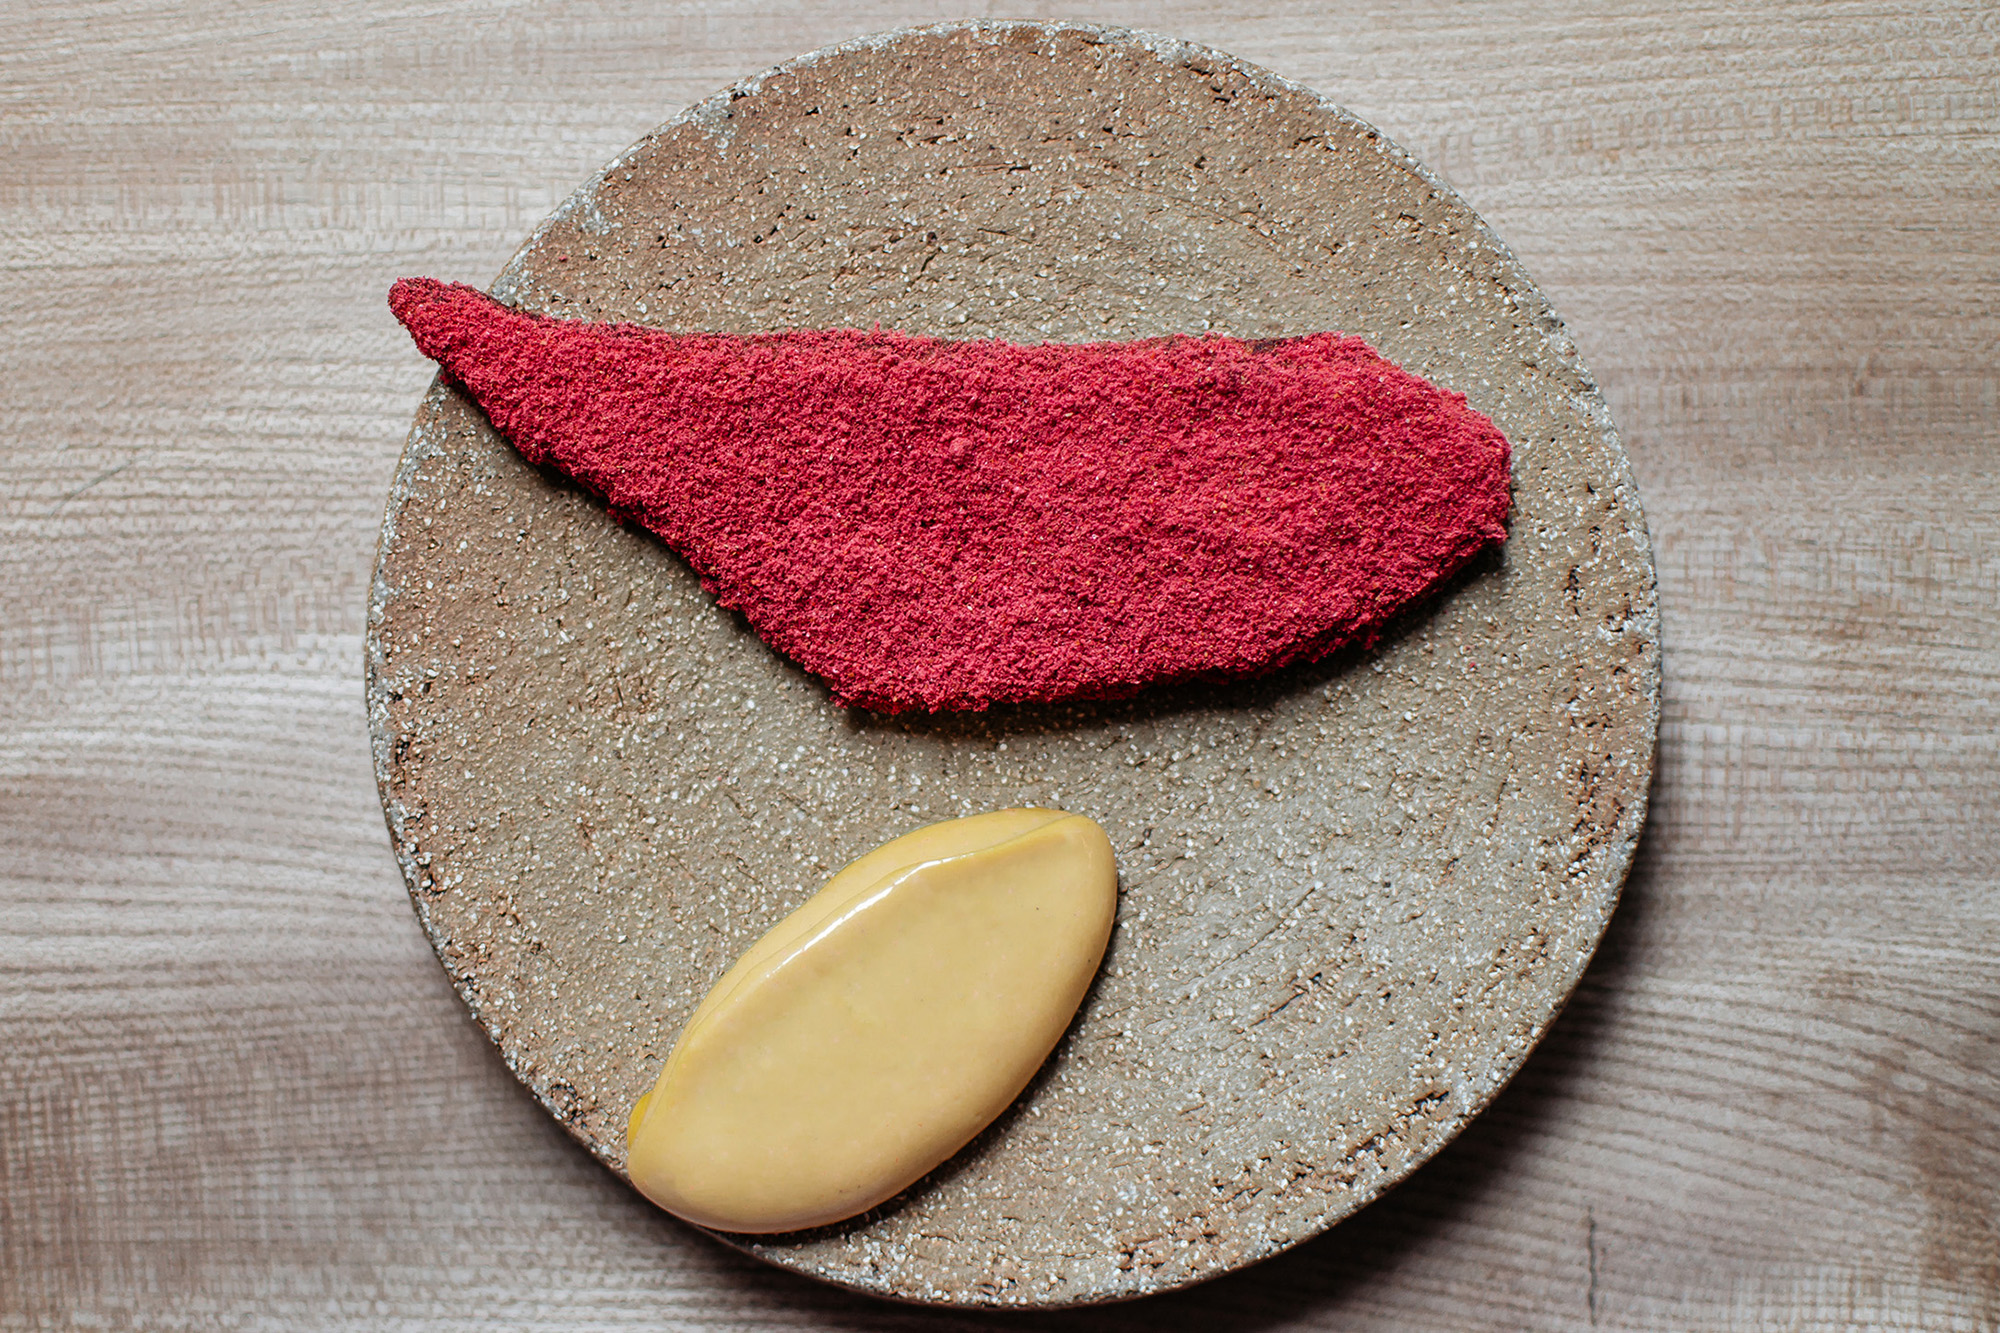 Plantain, raspberry salt and smoked scotch bonnet chilli from the tasting menu at Michelin-starred Ikoyi restaurant in London